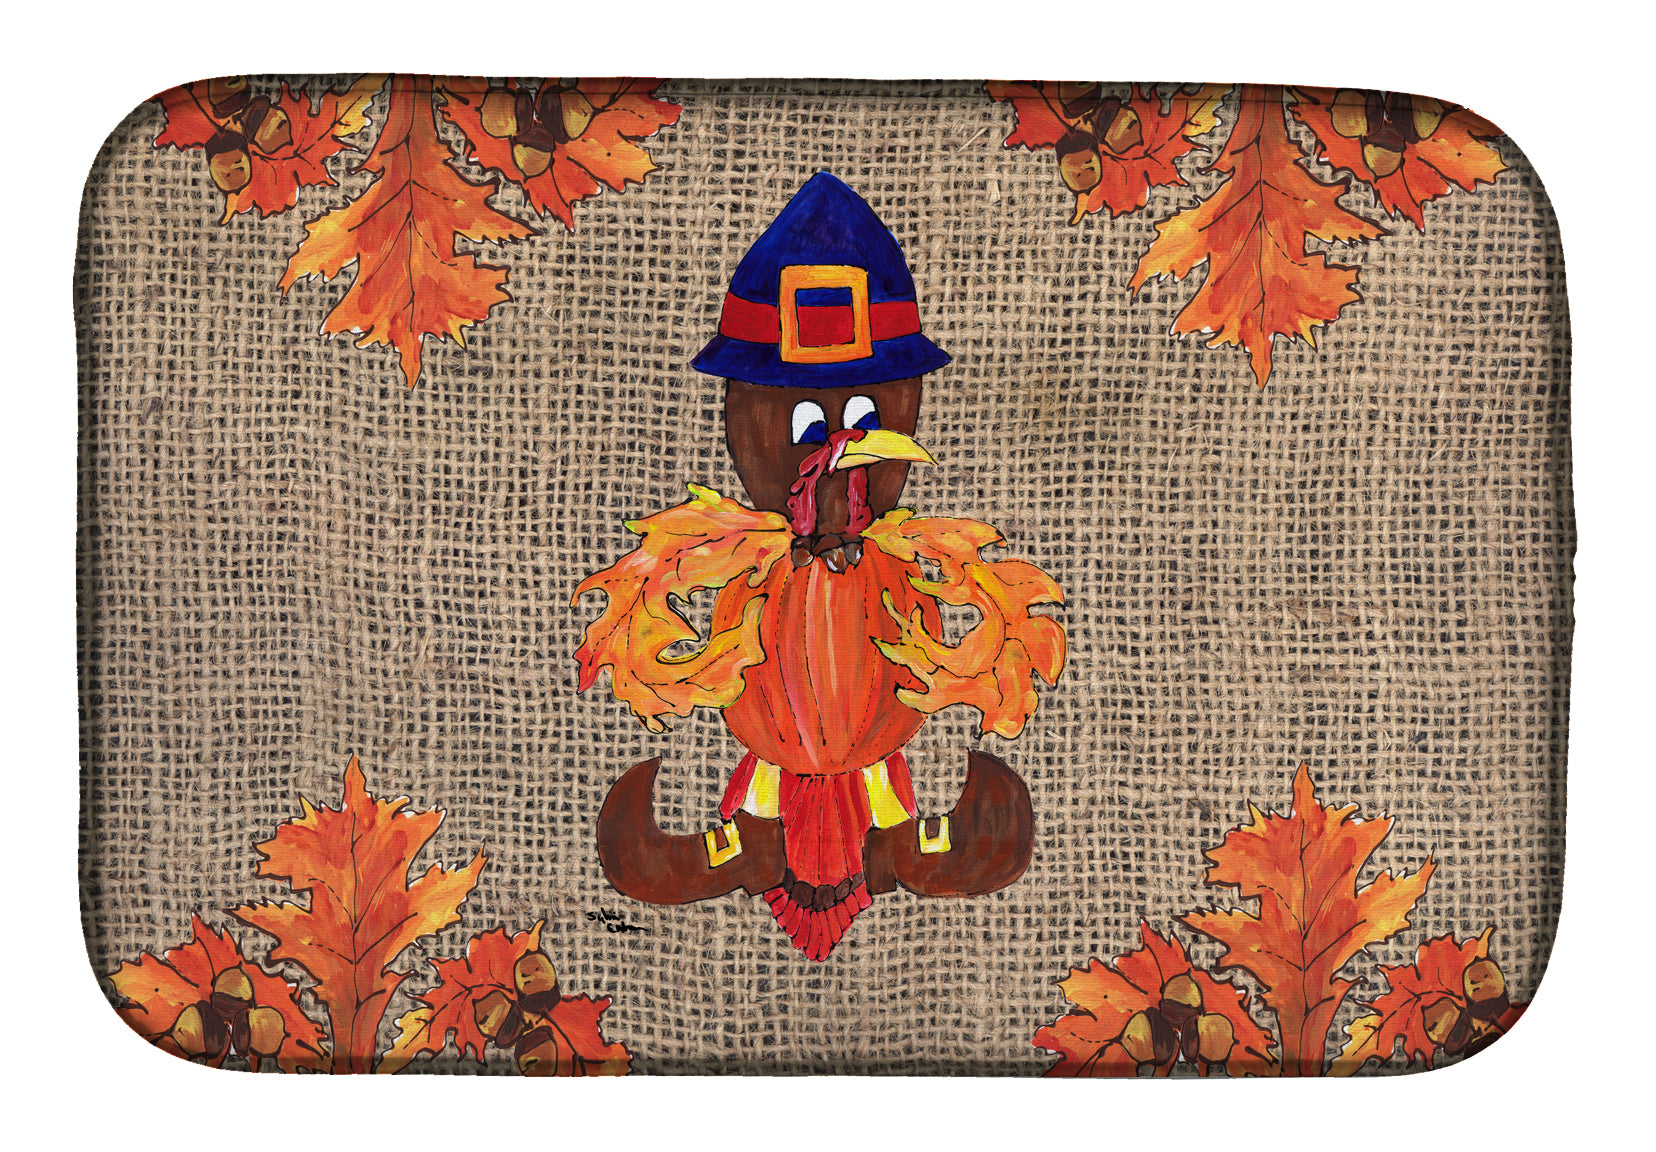 Thanksgiving Turkey Pilgram Fleur de lis Dish Drying Mat 8743DDM by Caroline's Treasures